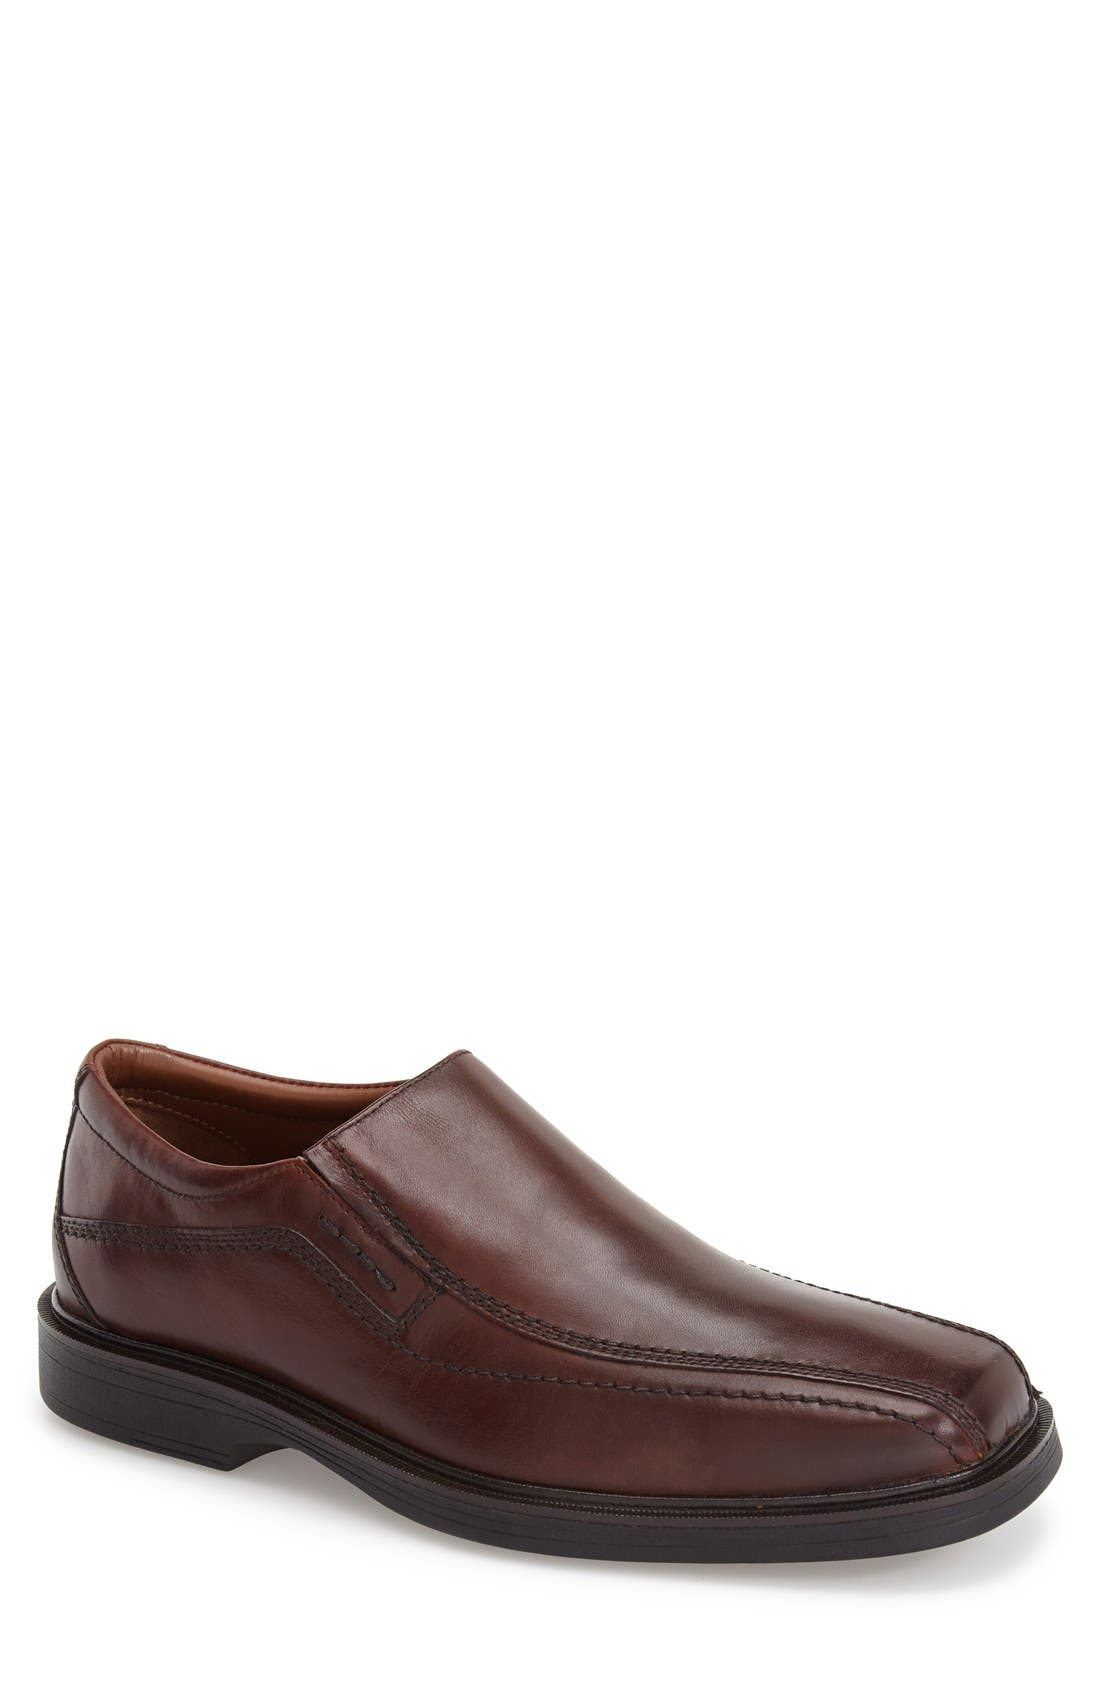 JOHNSTON & MURPHY 'Penn' Venetian Loafer